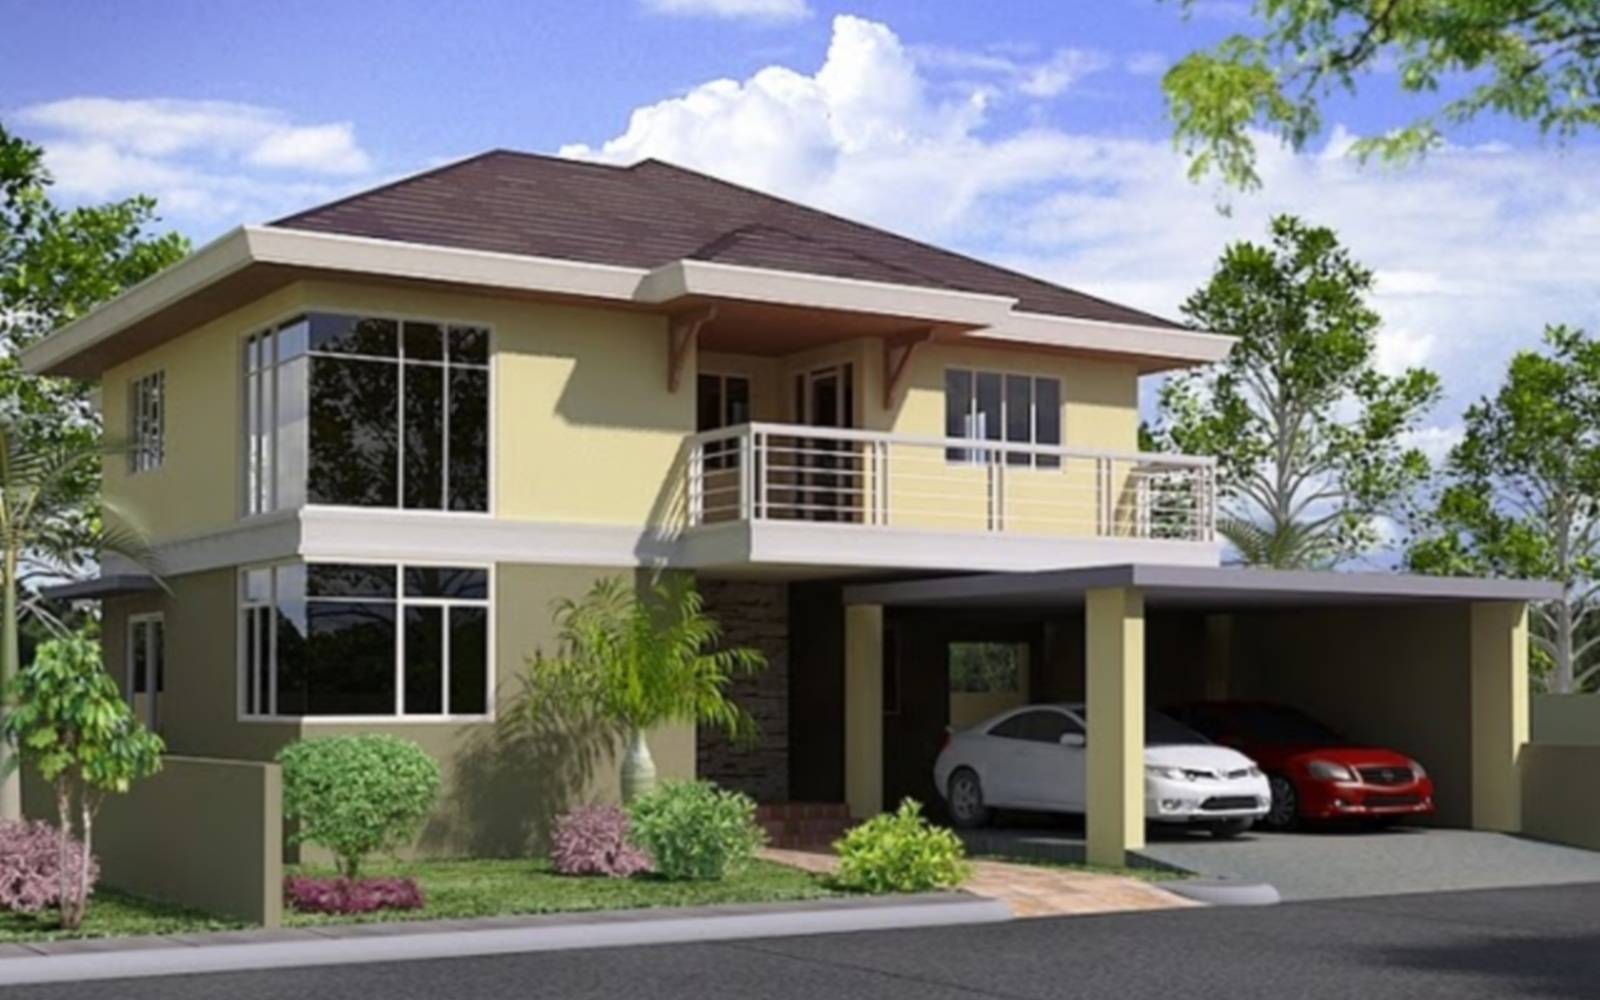 Kk two storey house plan philippines photoshop hd for Three storey house designs in the philippines